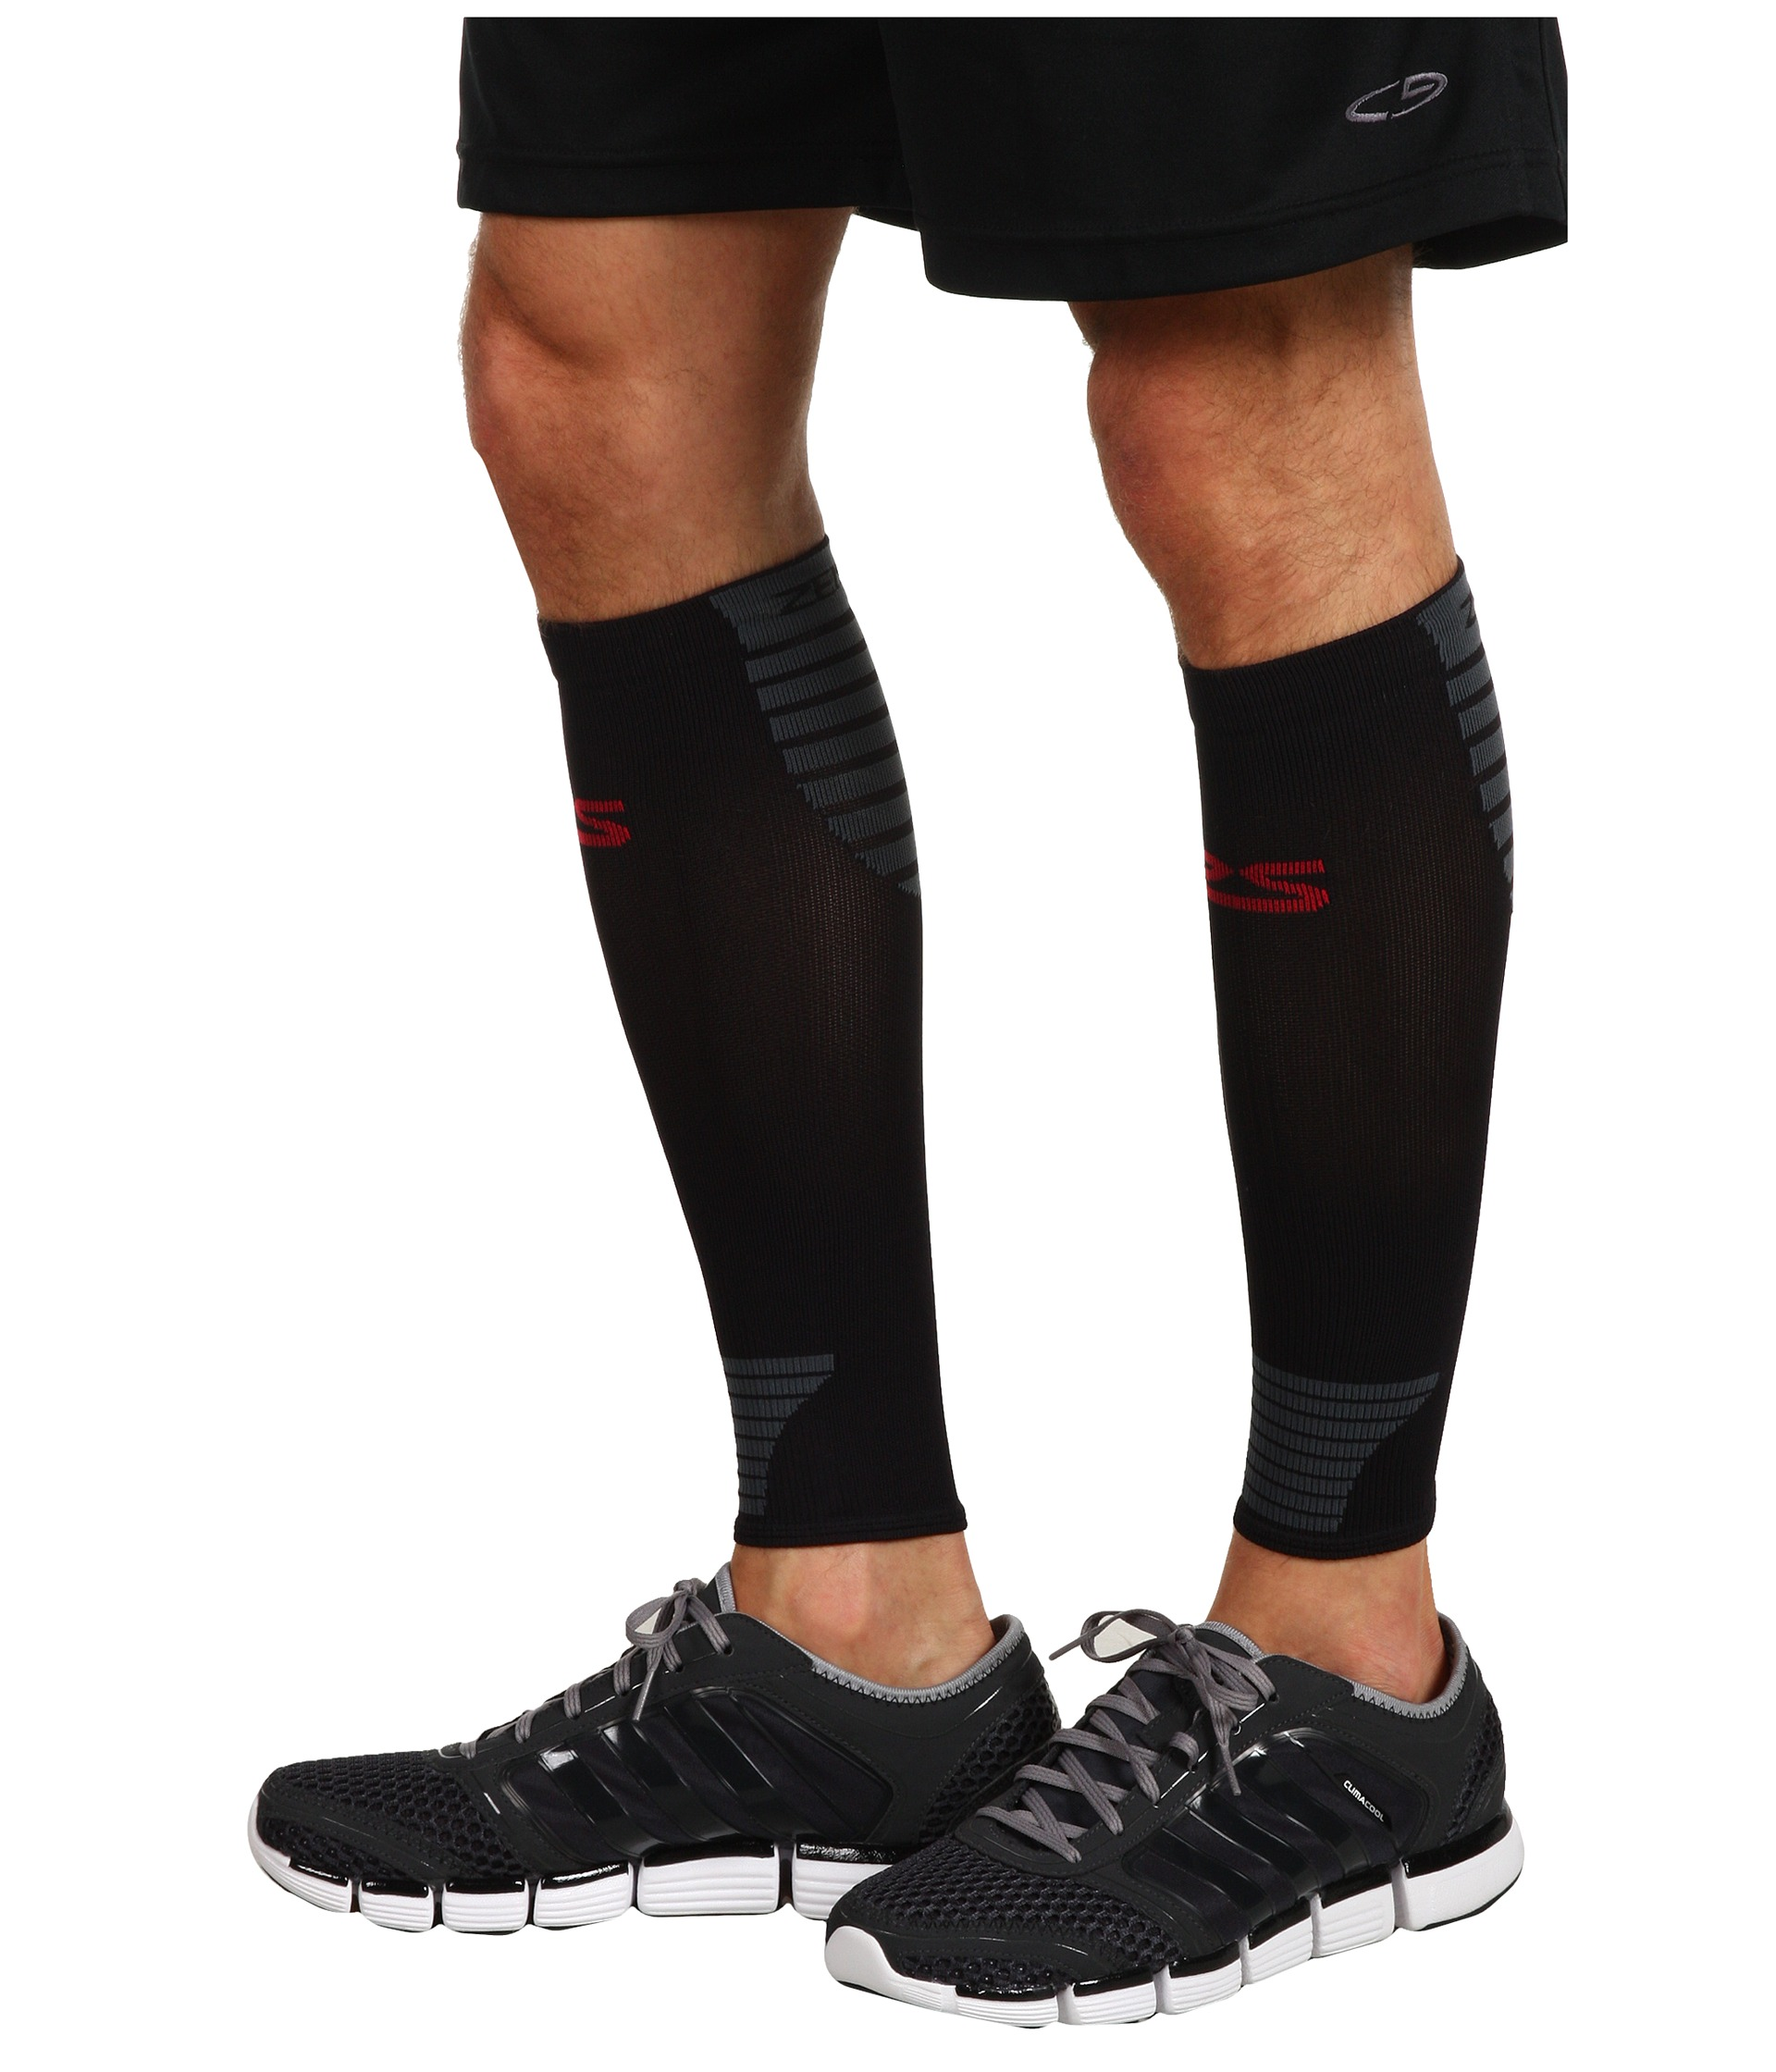 Breathable Leg Sleeves Knee Brace Compression Basketball Protection Protect Activity Sports. Item:New Cooling Leg Sleeve For Outdoor Activities.